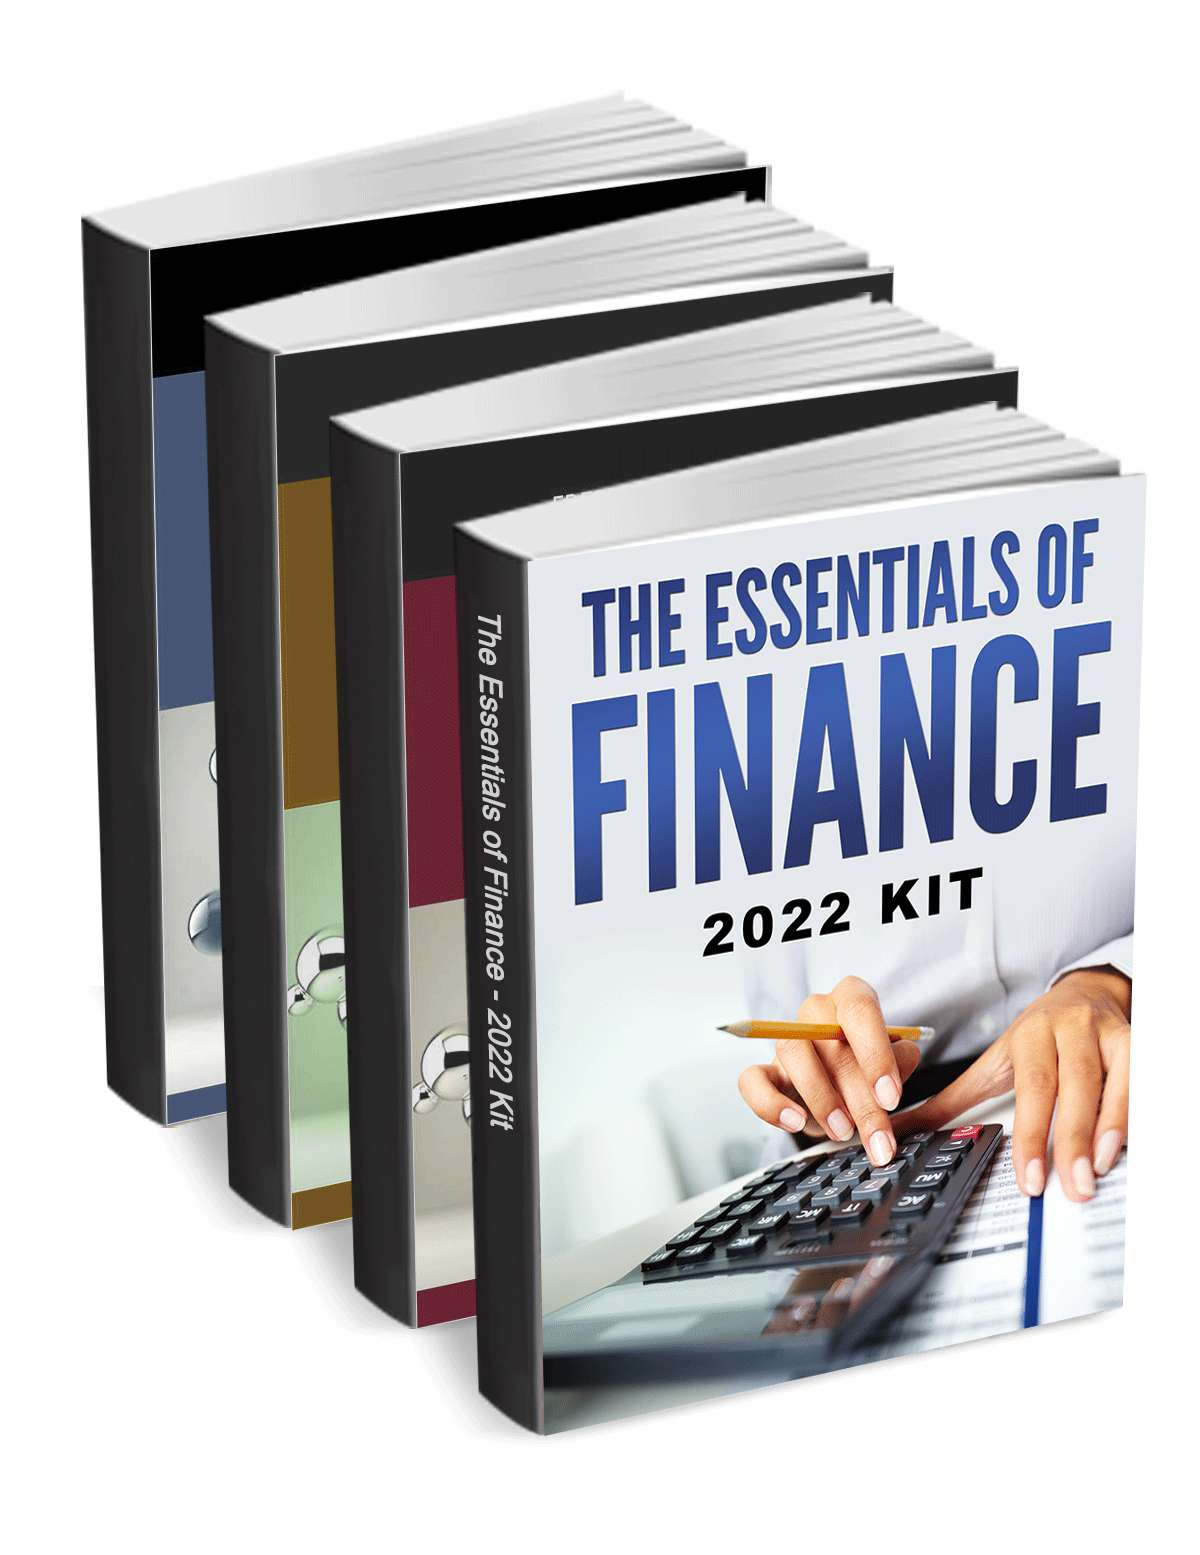 The Essentials of Finance - 2020 Kit